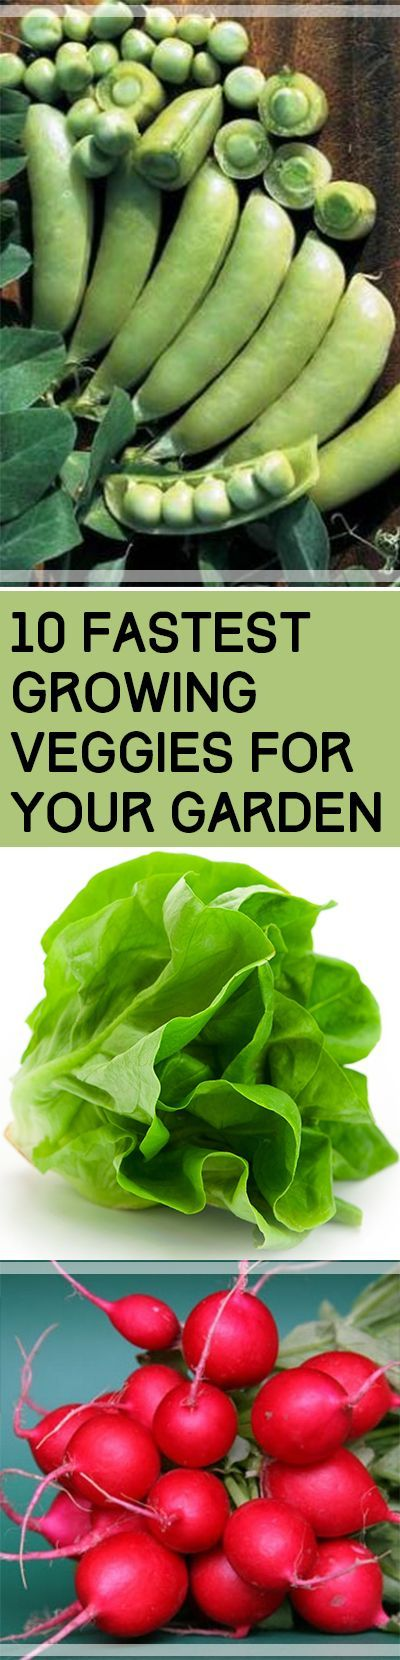 10 Fastest Growing Veggies for Your Garden